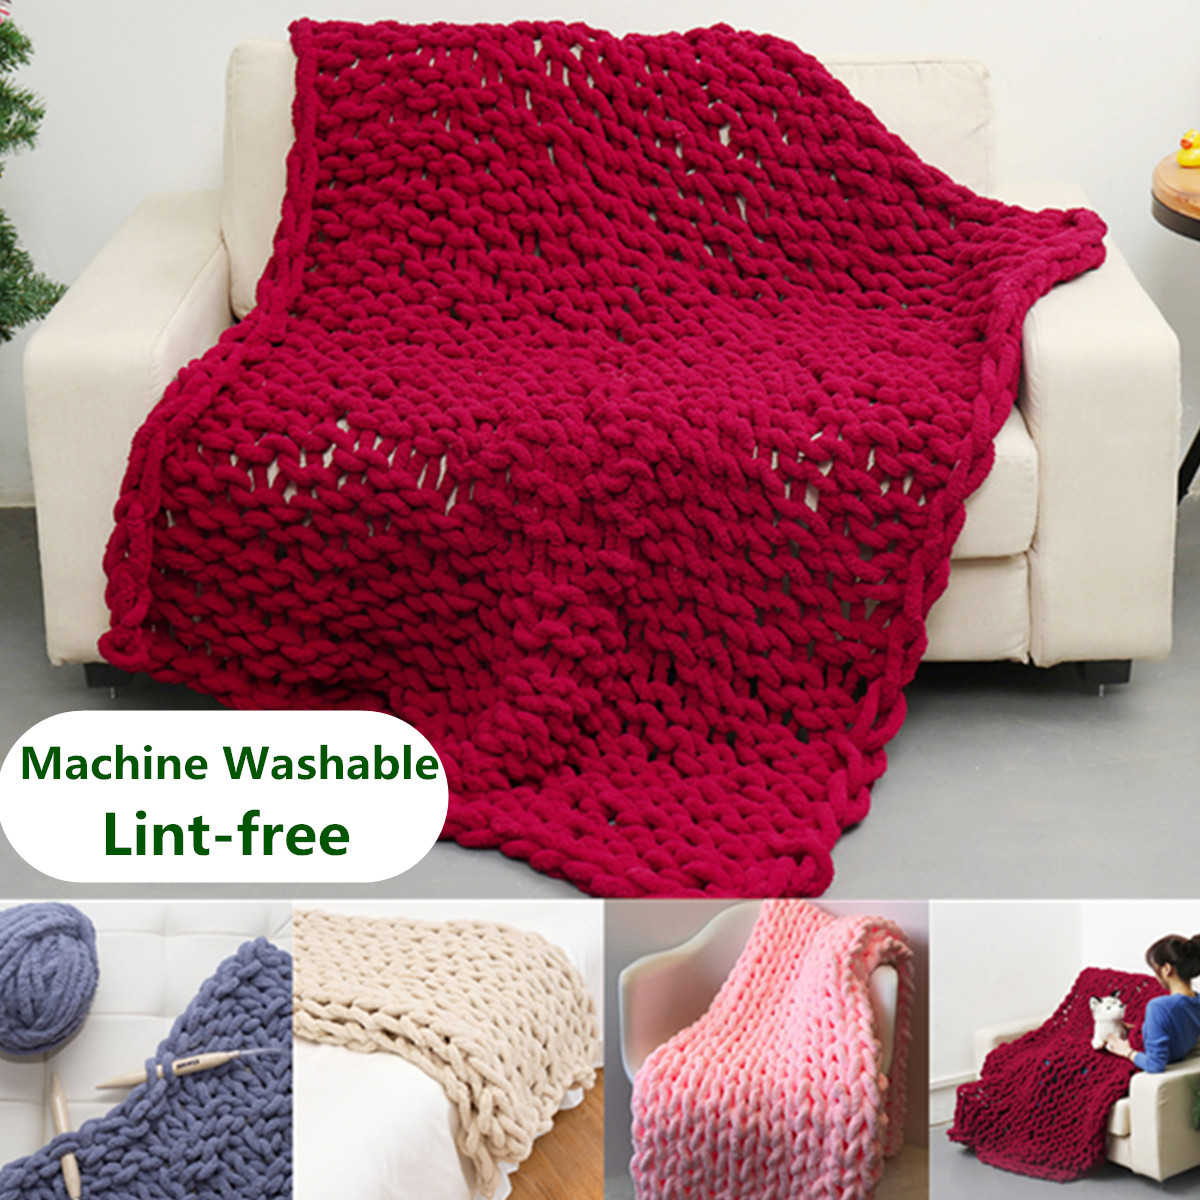 Grtsunsea 59''x47'' Hand-woven Soft Chunky Knitted Blanket Bulky Thick Yarn Bed Sofa Throw - Washable and Lint-free